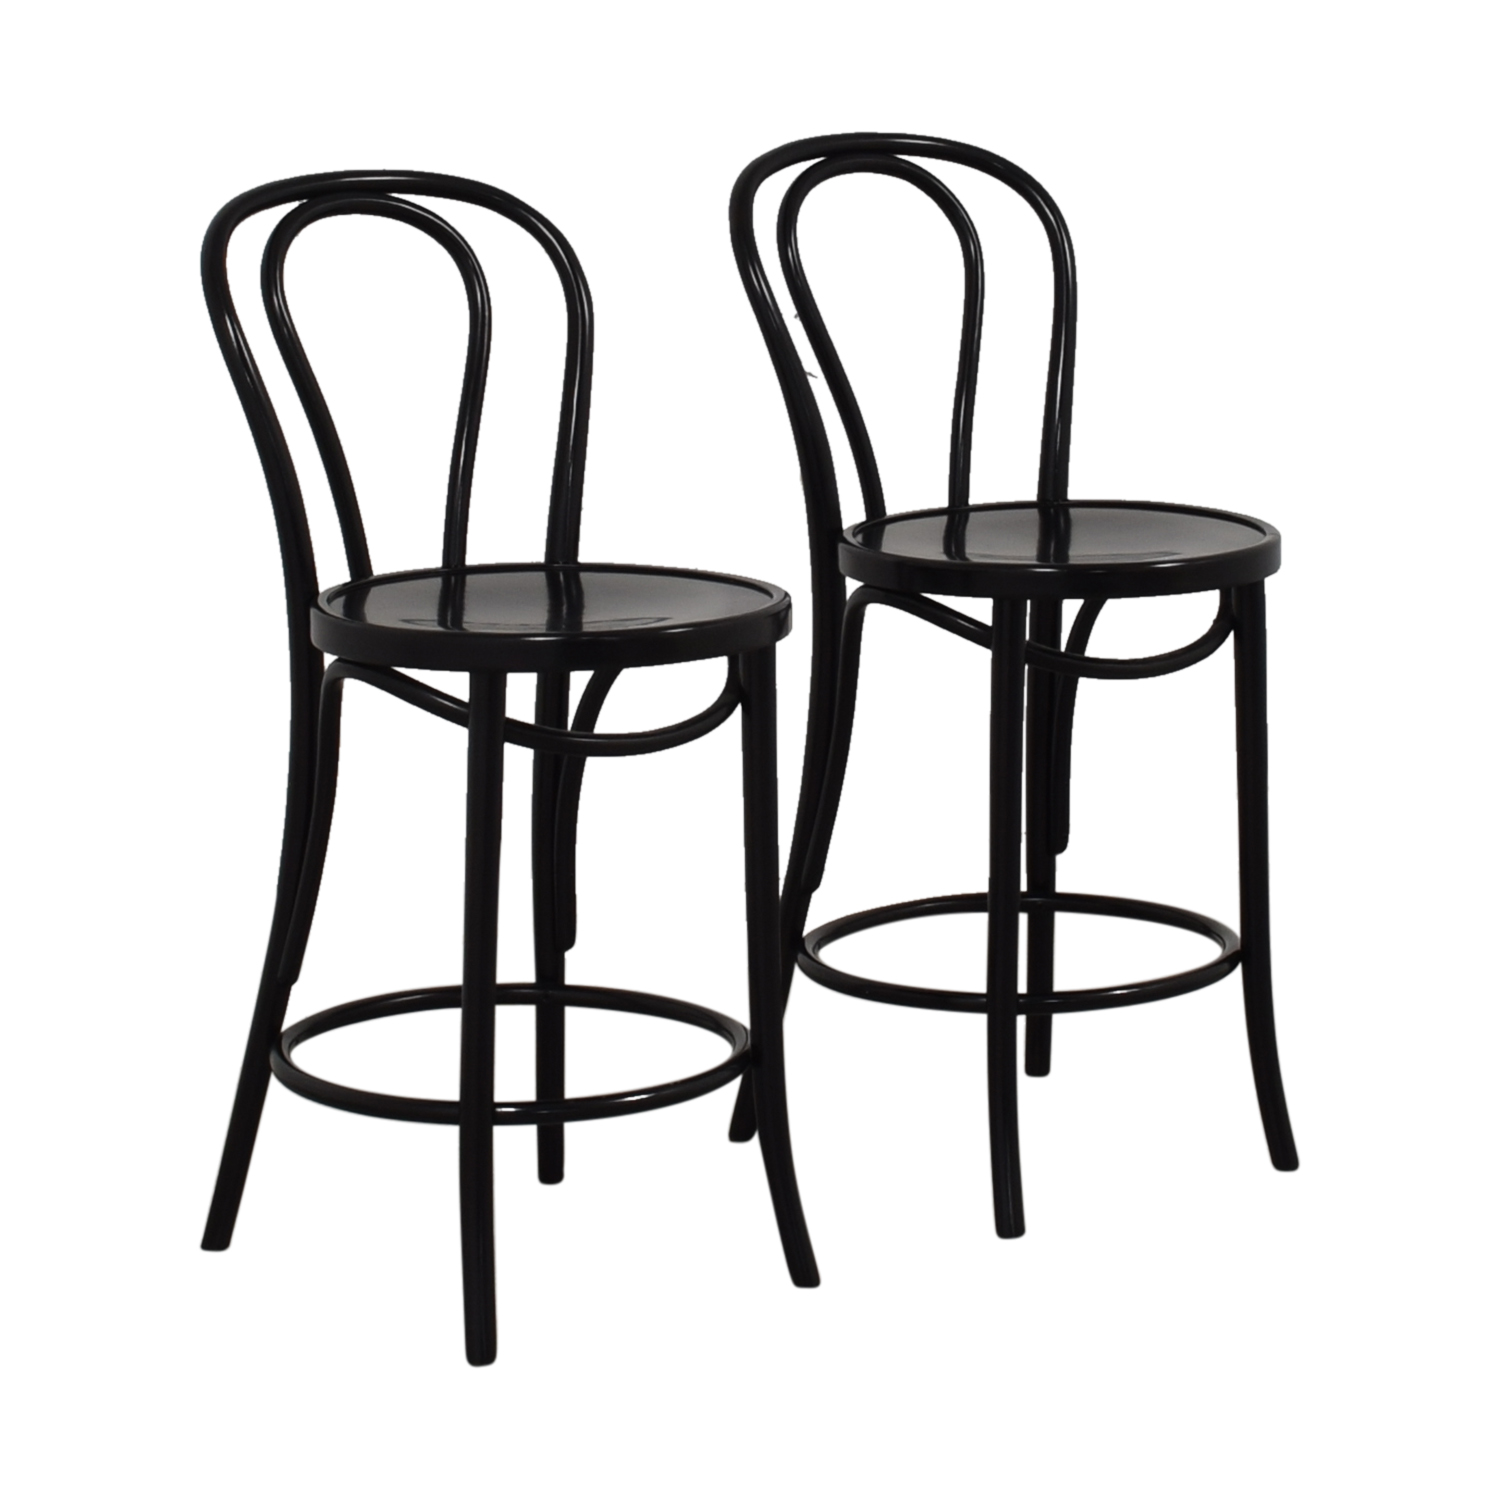 Peachy 80 Off Crate Barrel Crate Barrel Vienna Black Counter Stools Chairs Ncnpc Chair Design For Home Ncnpcorg